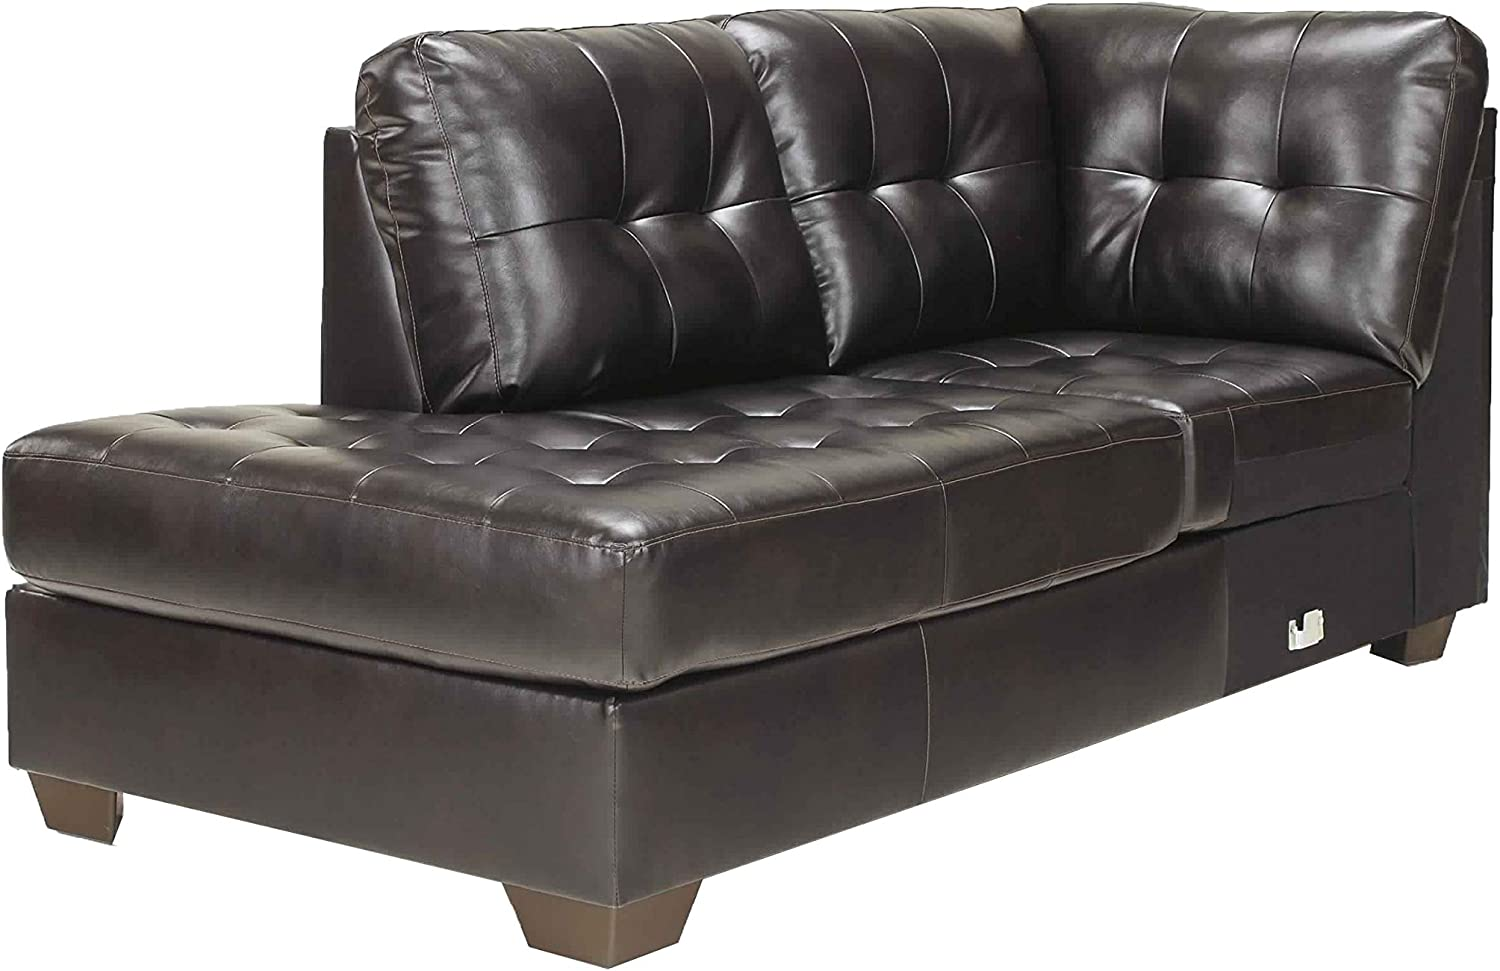 Amazon.com: Benjara Left Arm Facing Leather Upholstered Chaise